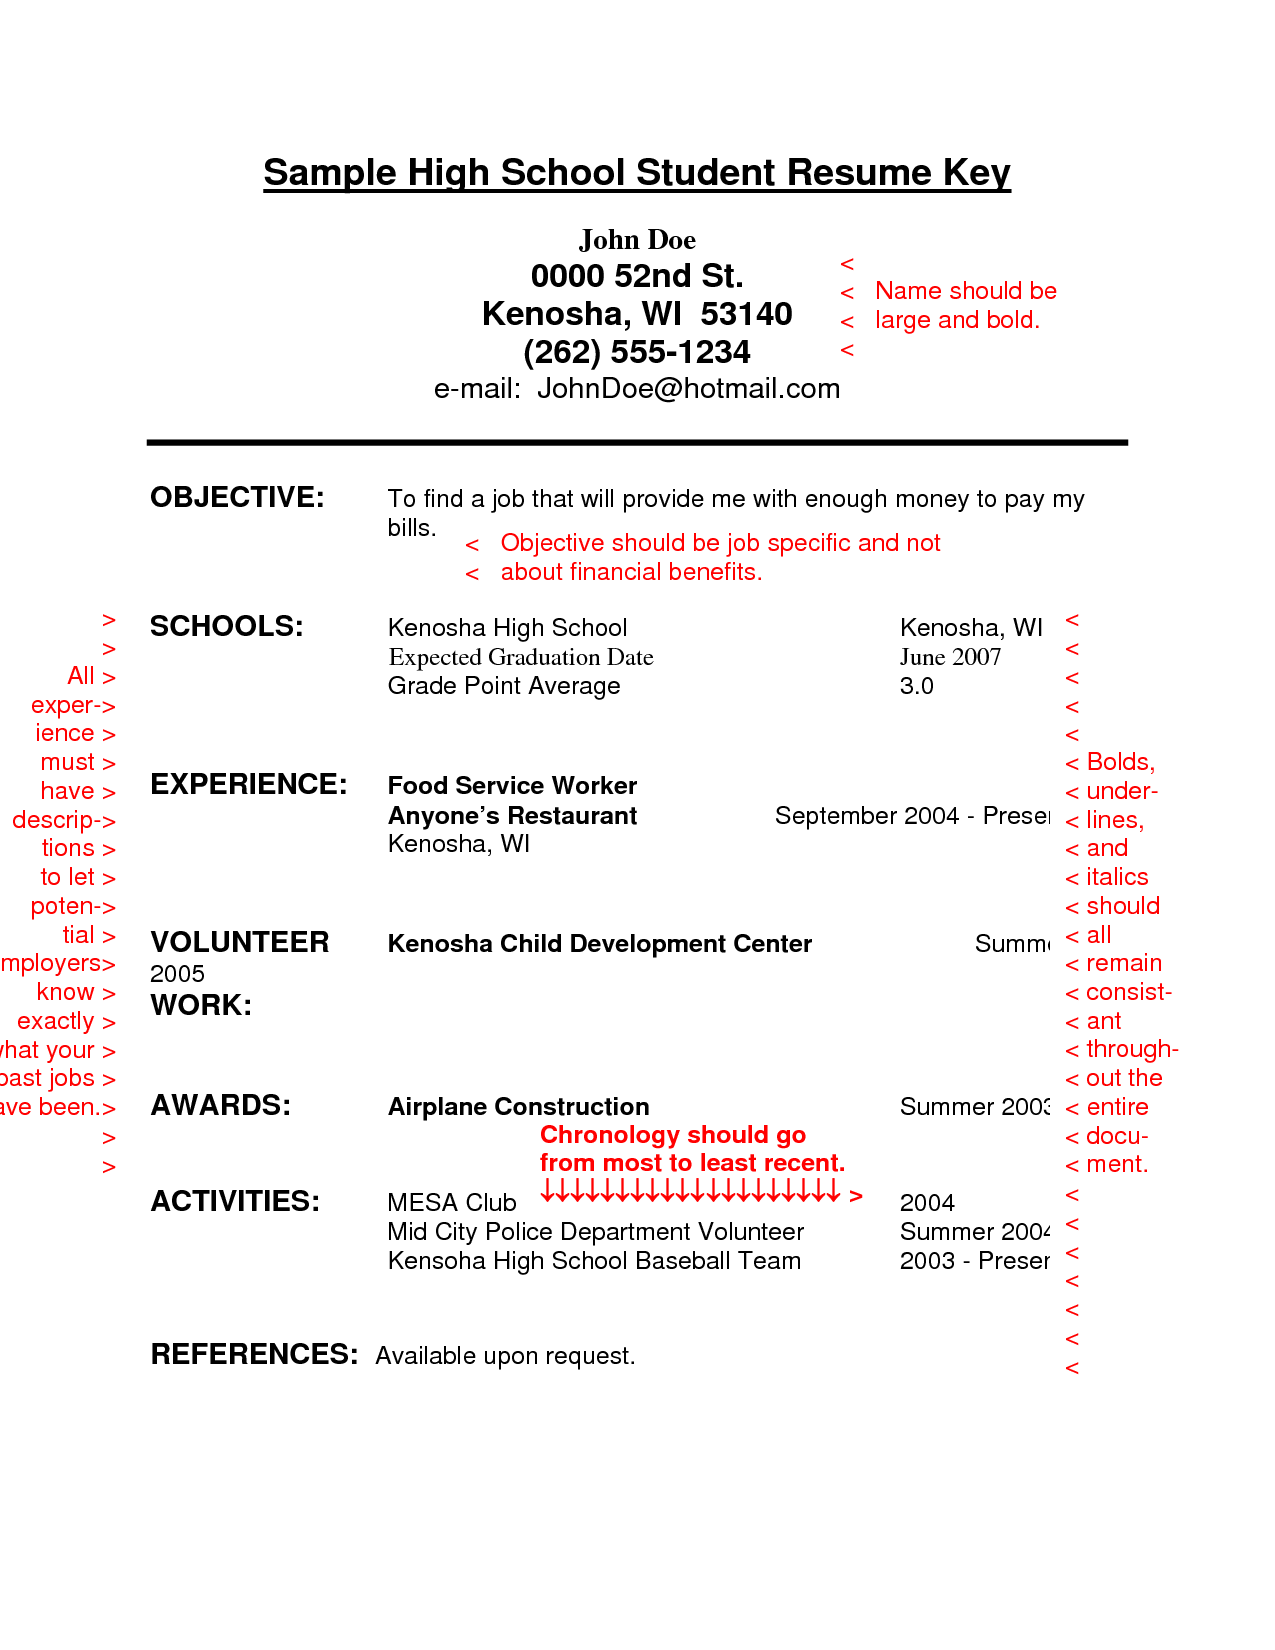 Resume Sample For High School Students With No Experience -  Http://www.resumecareer.info/resume-Sample-For-High-School-Students -With-No-Experience-11/